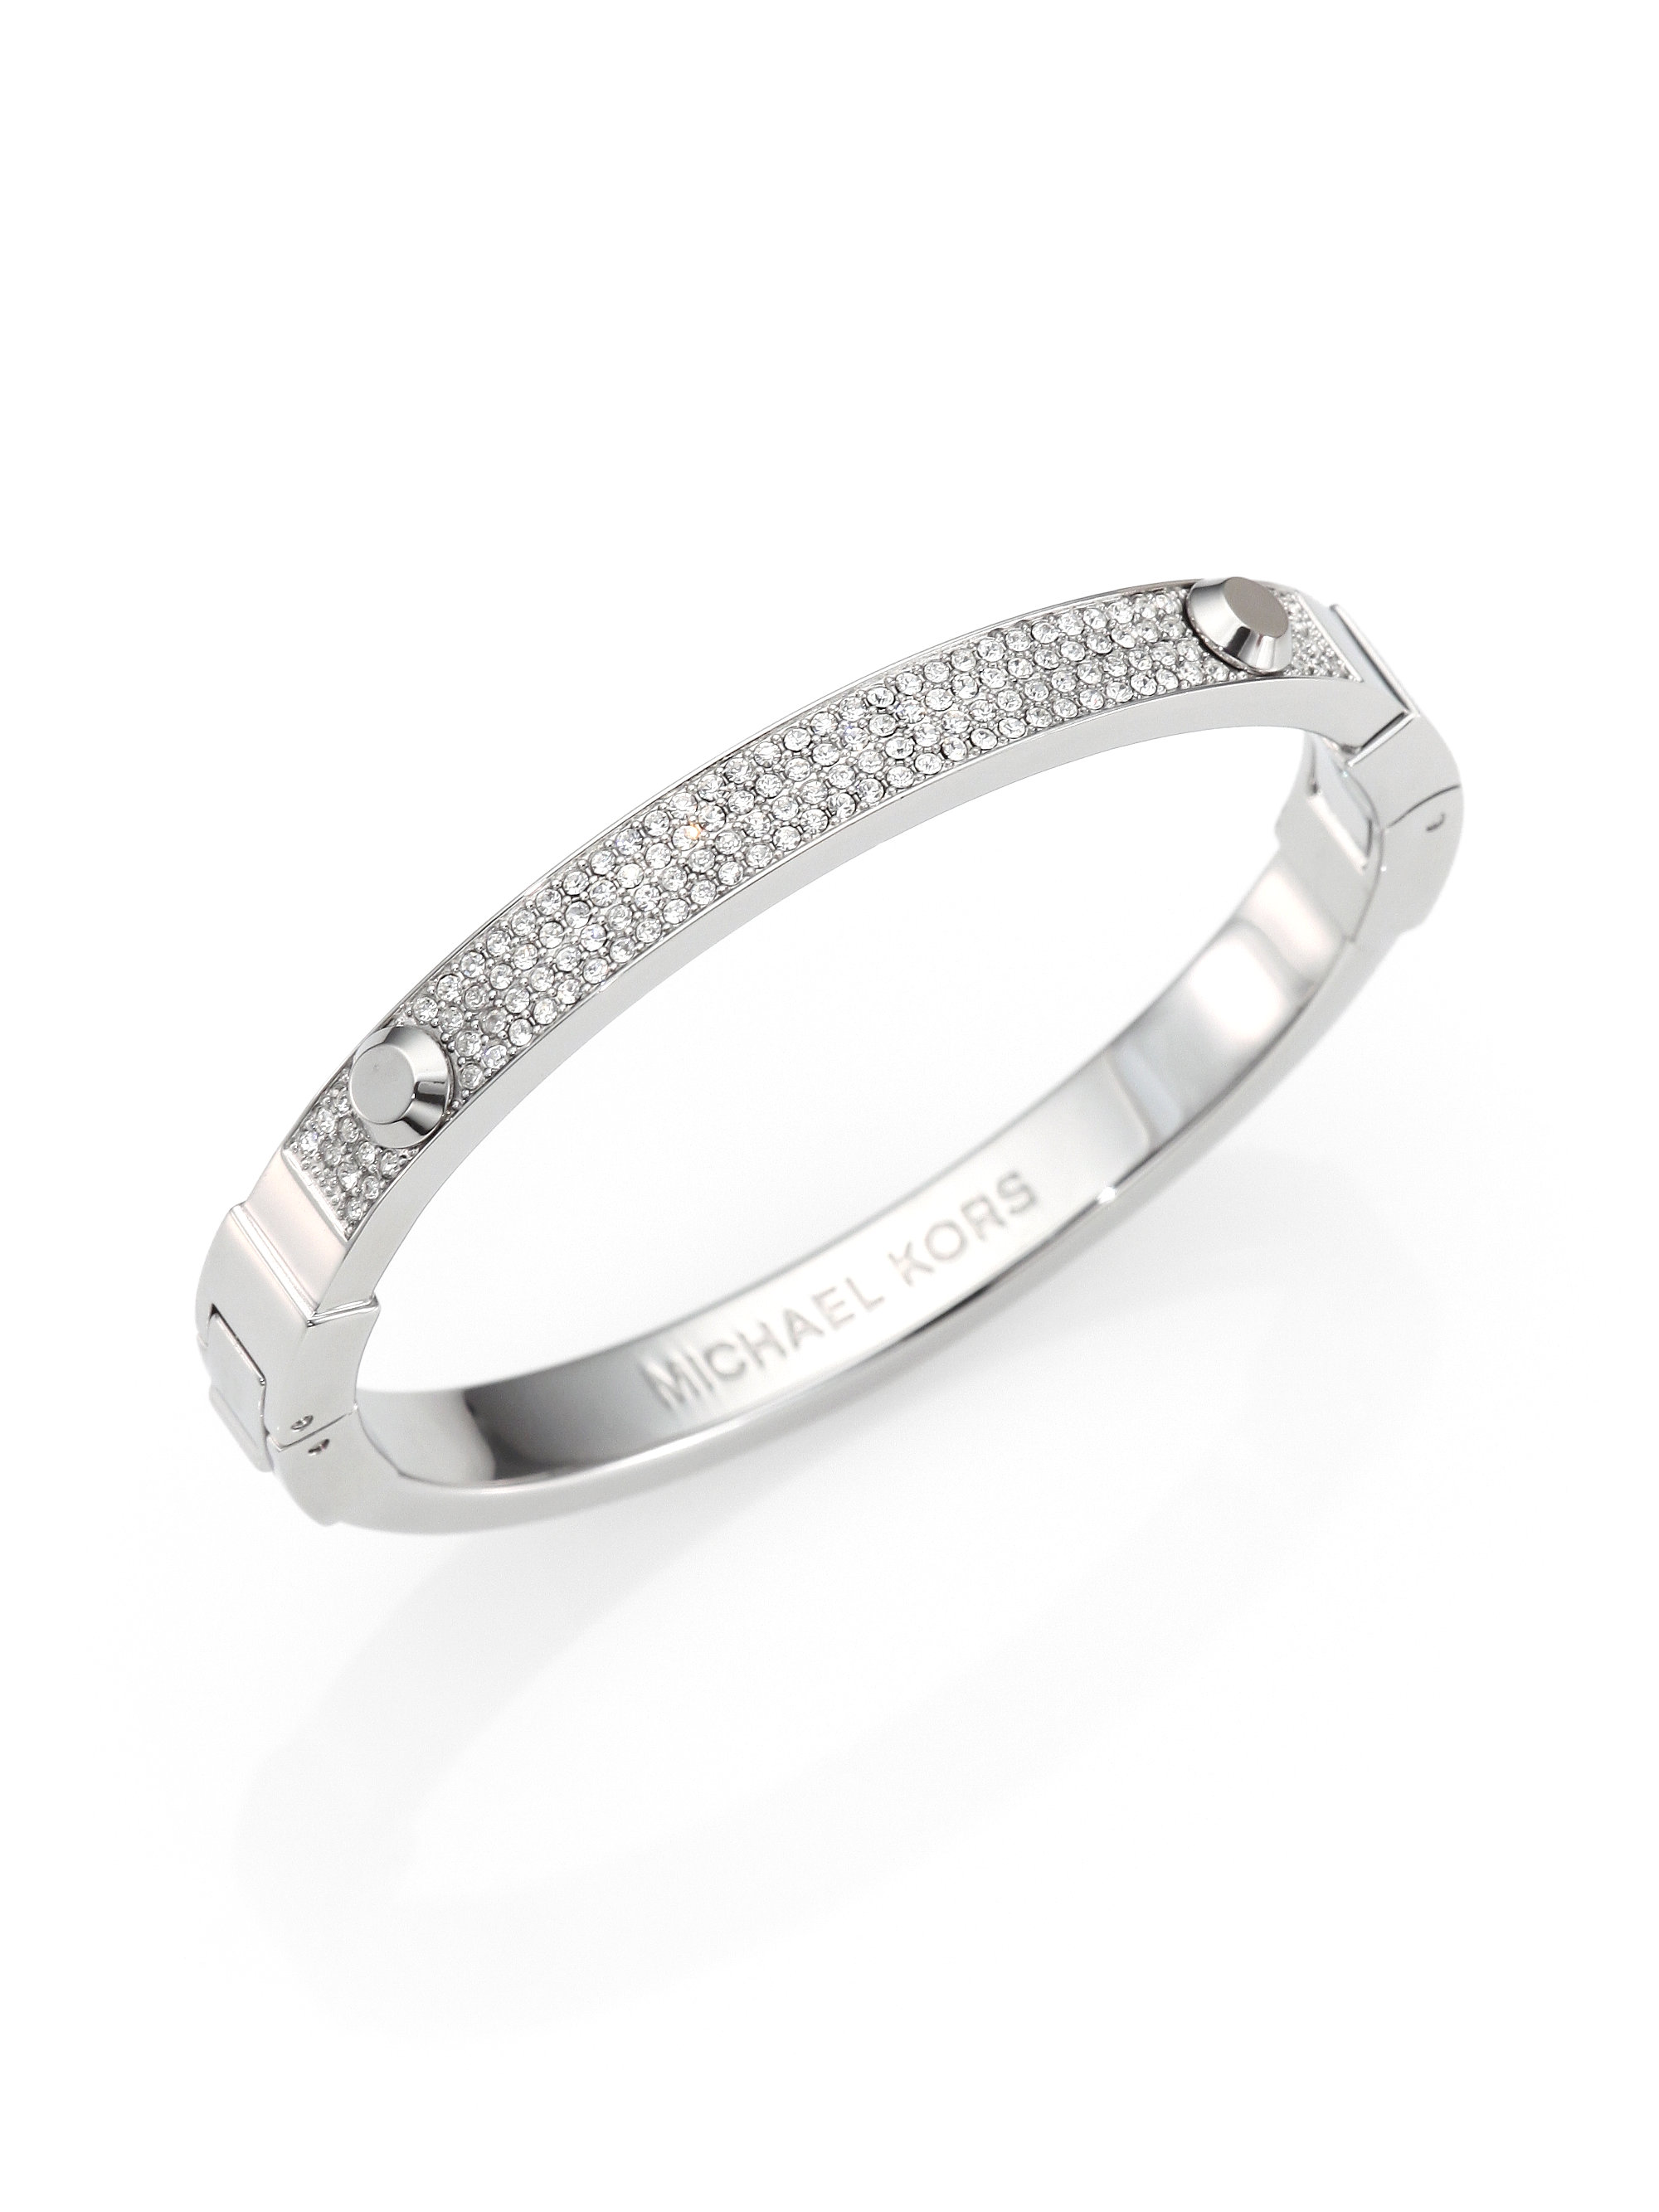 bangles la id at bracelet bracelets org j nouvelle bangle bague pave jewelry diamond